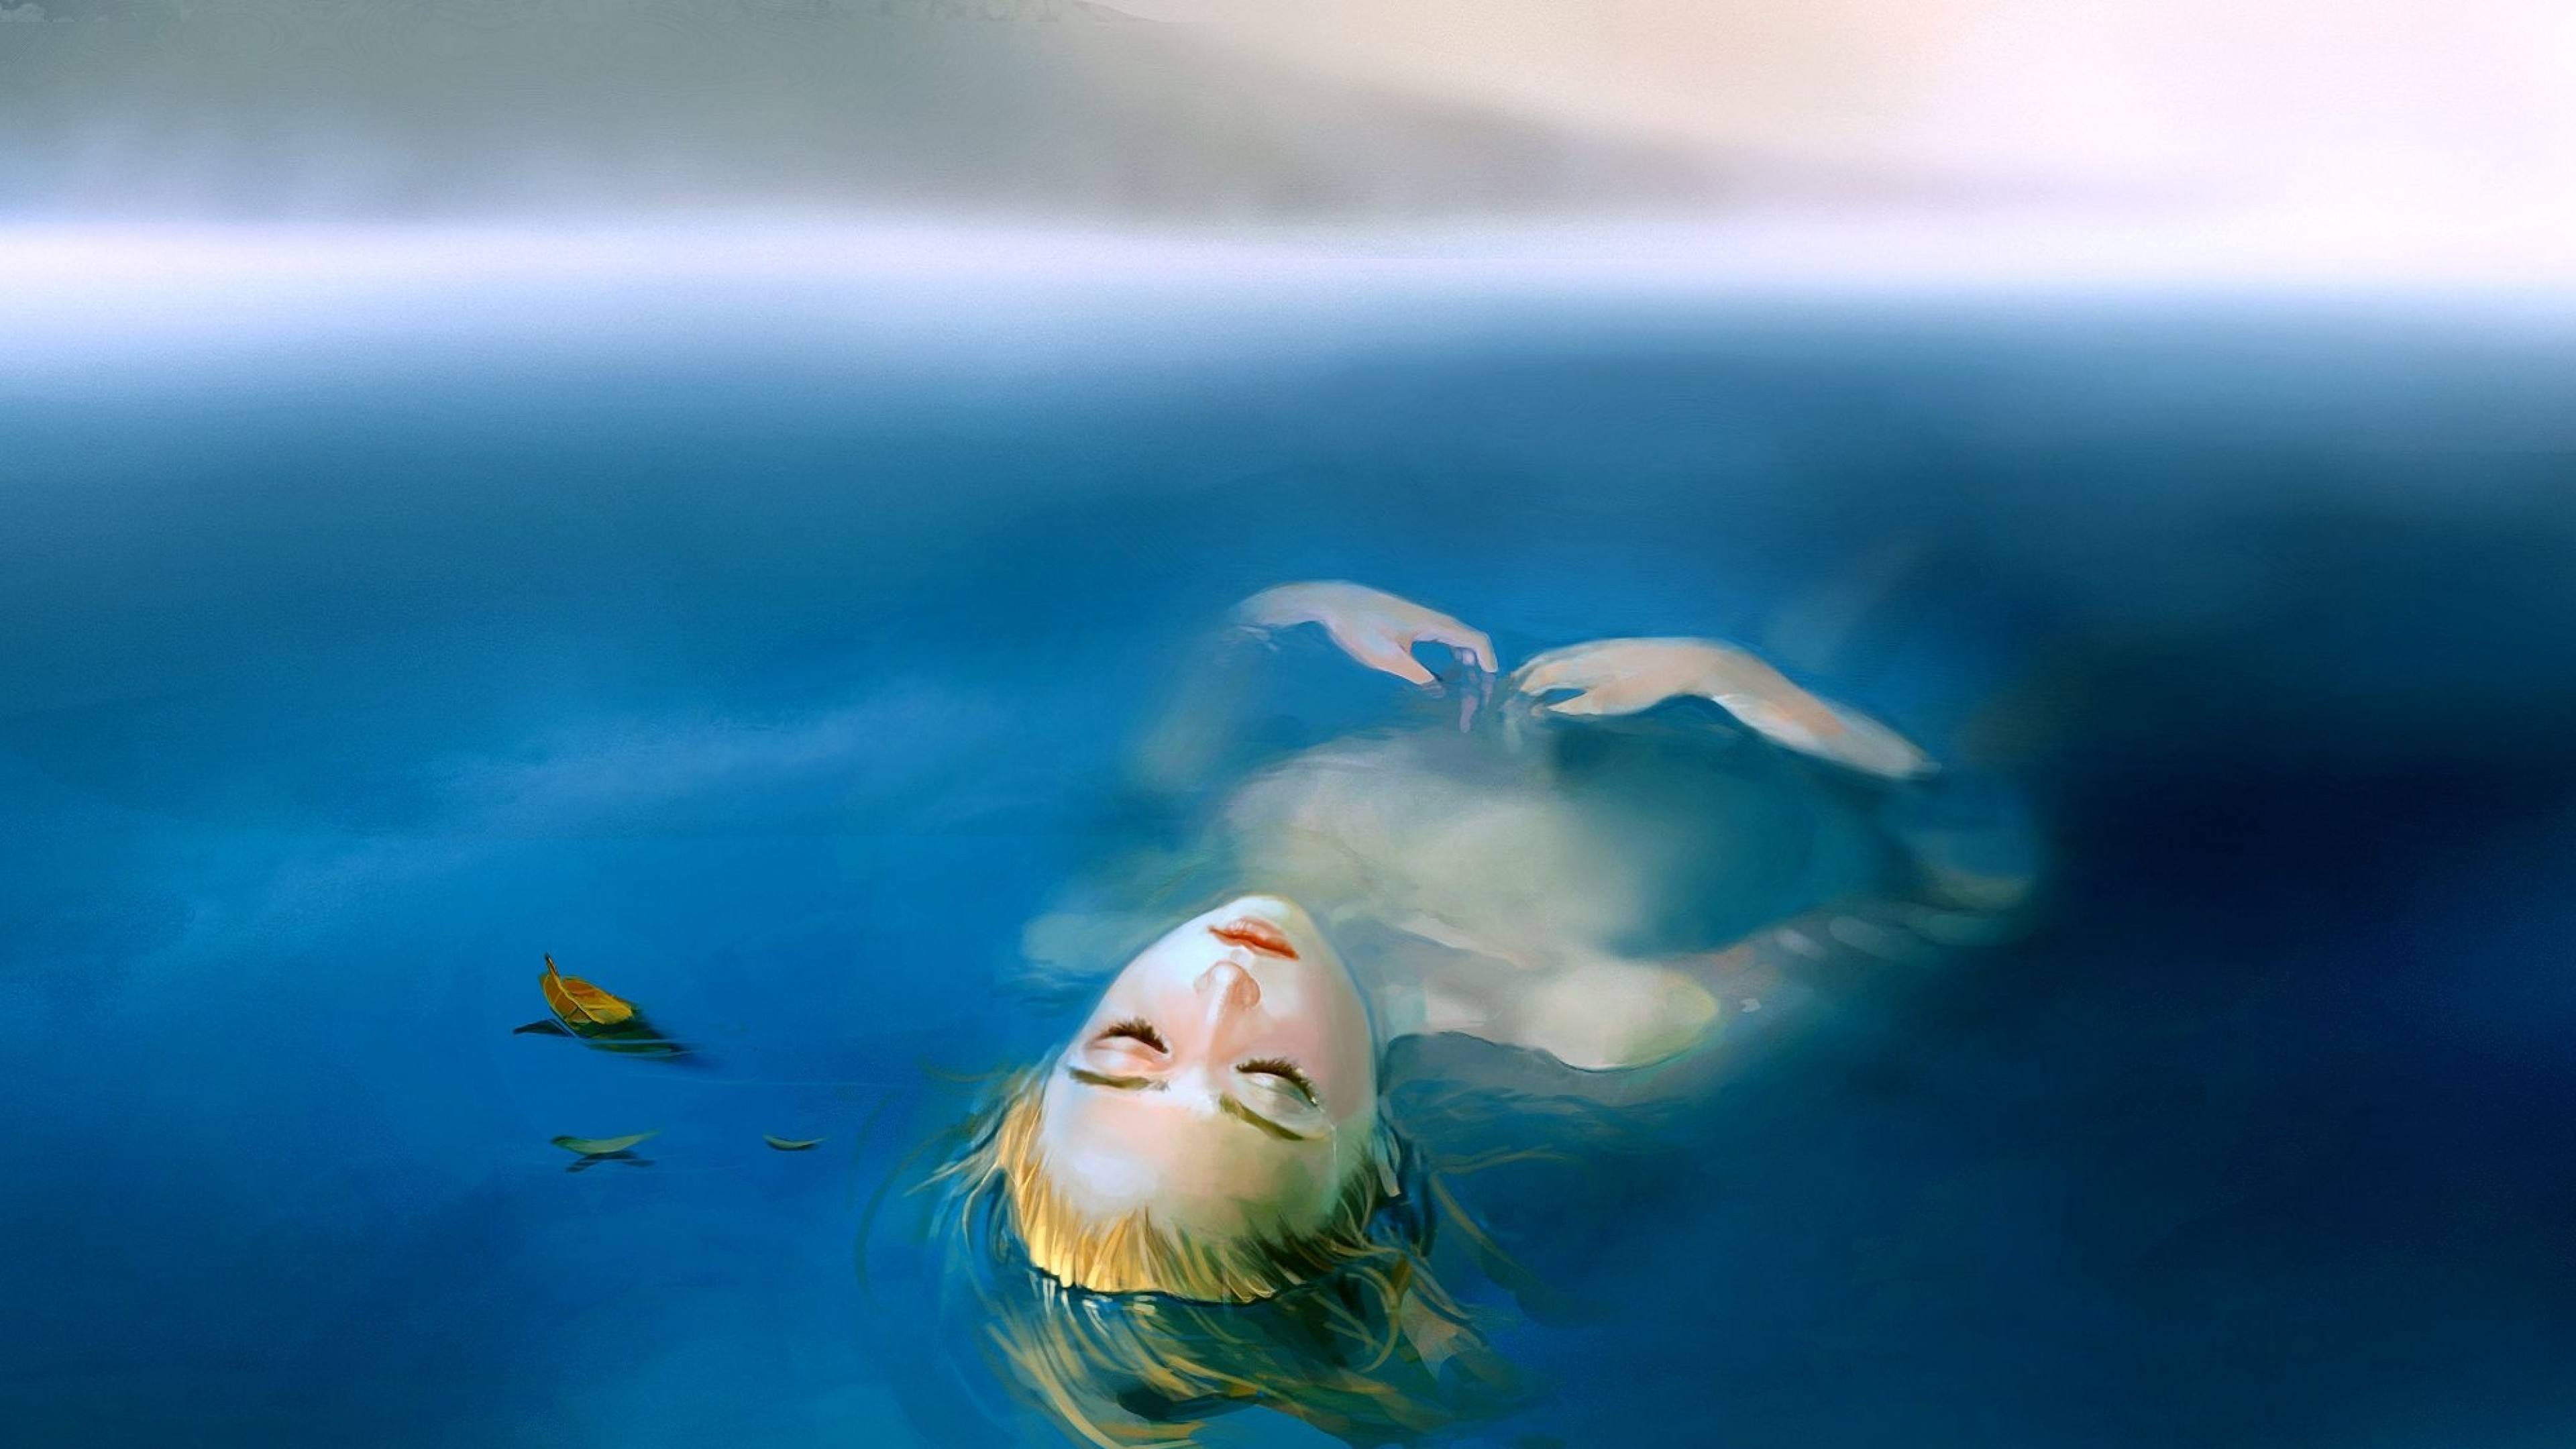 Wallpaper girl, water, corpse, drowned woman, body, death